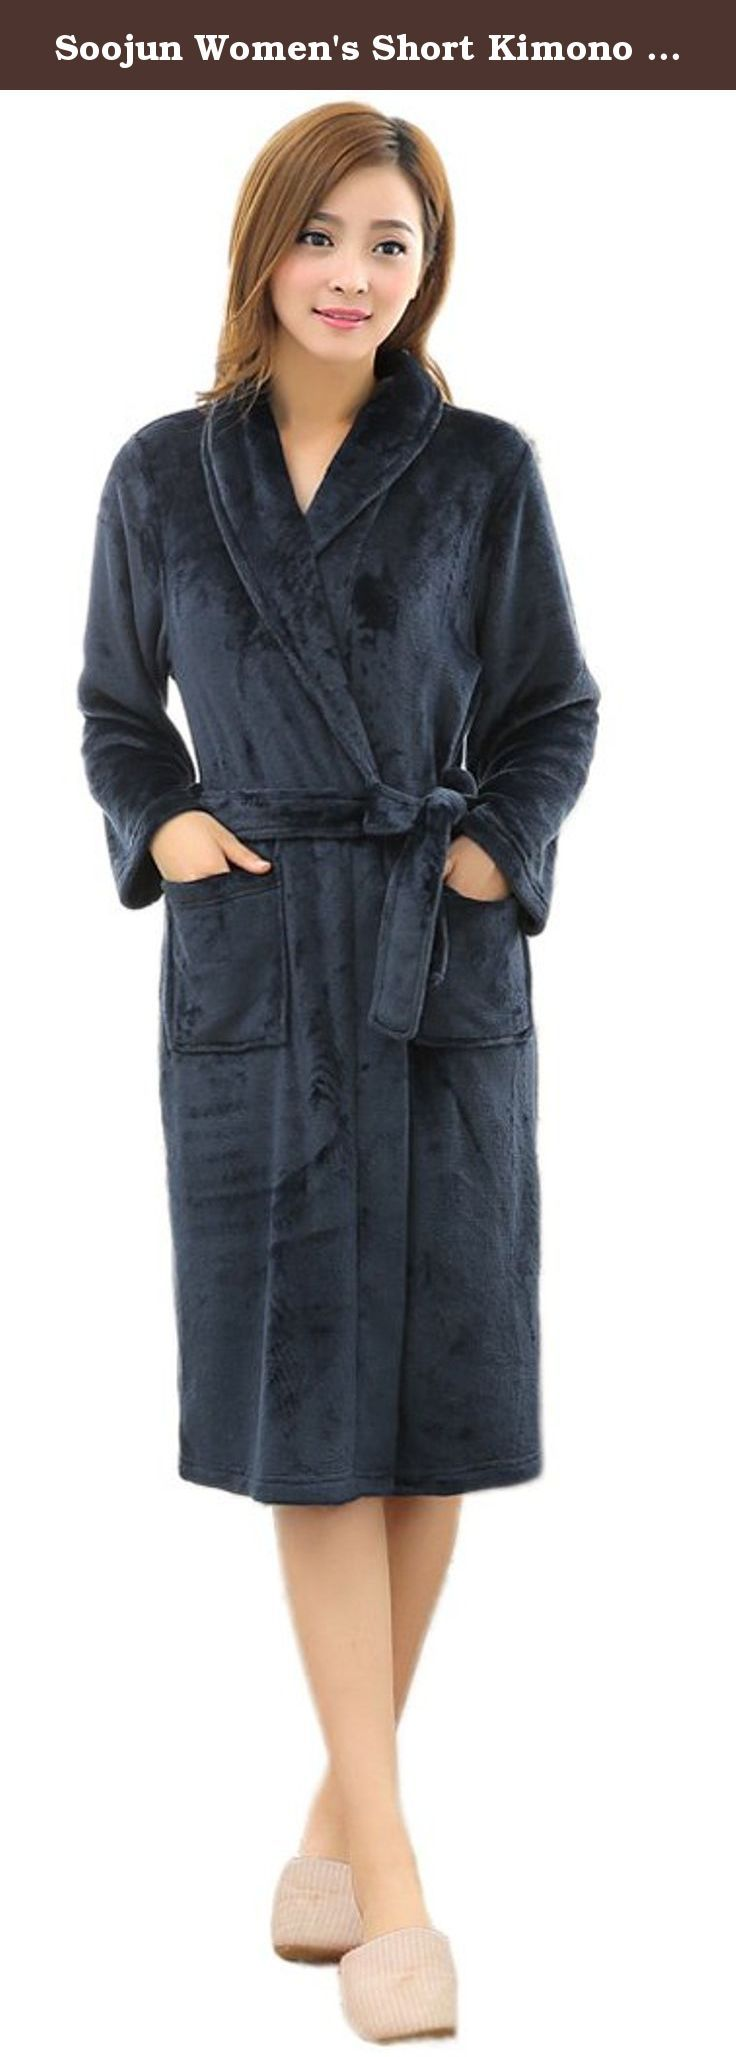 Soojun Women's Short Kimono Bathrobe Coral Fleece Shawl Collar Robe, Navy. We use post service (USPS, etc), express service (Fedex, DHL, UPS etc) to ship your package. You can easily get estimated delivery date when you place the order. We will never stop to pursuit your perfection. If you happen to have any other questions or concerns, please do not hesitate to contact us via e-mail. We will reply you within 8 hours by email. .